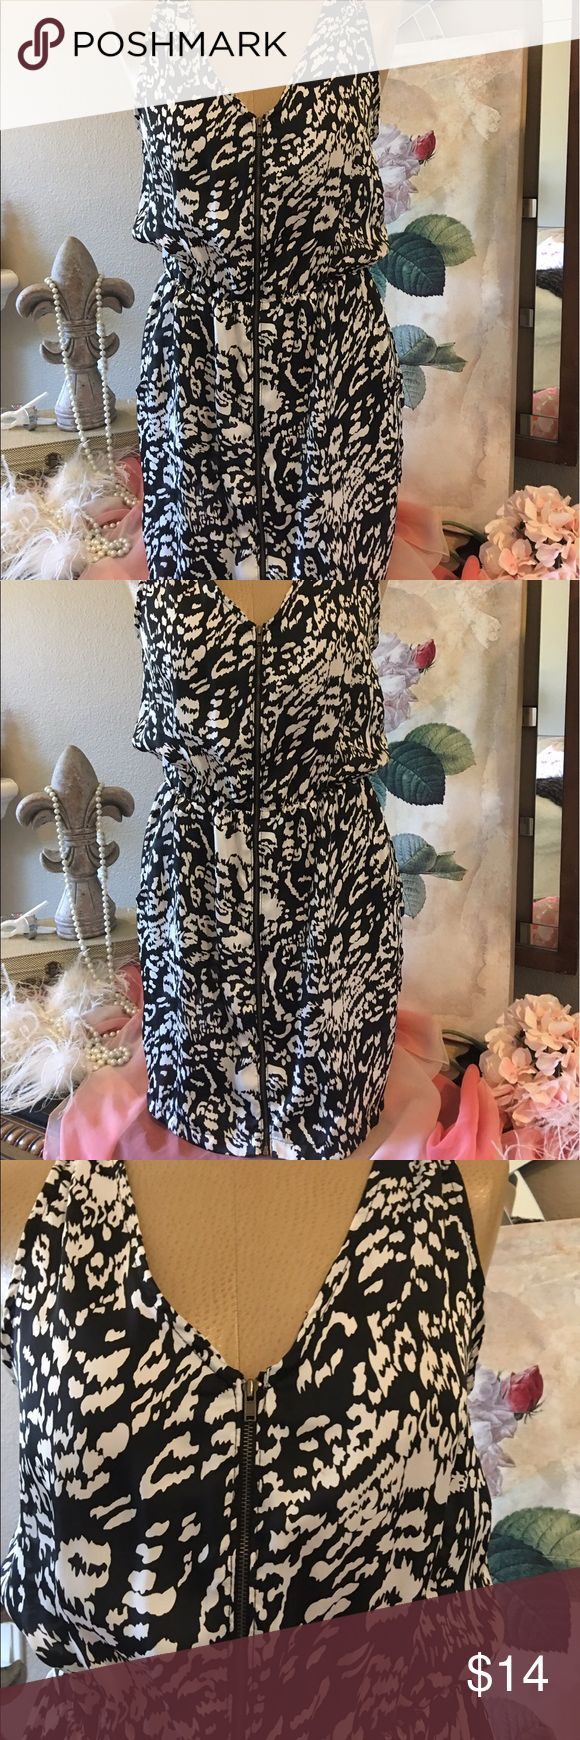 """Black & White zip up dress size Medium Cute! Black & White zip up dress size medium. Has two front pockets. Measures 18 1/2"""" arm pit to arm pit, 12"""" across at waist but it stretches and 34"""" shoulder to hem. 💯 polyester. In very very good condition. Brand is by Black. From ANGL. ANGL Dresses Mini"""